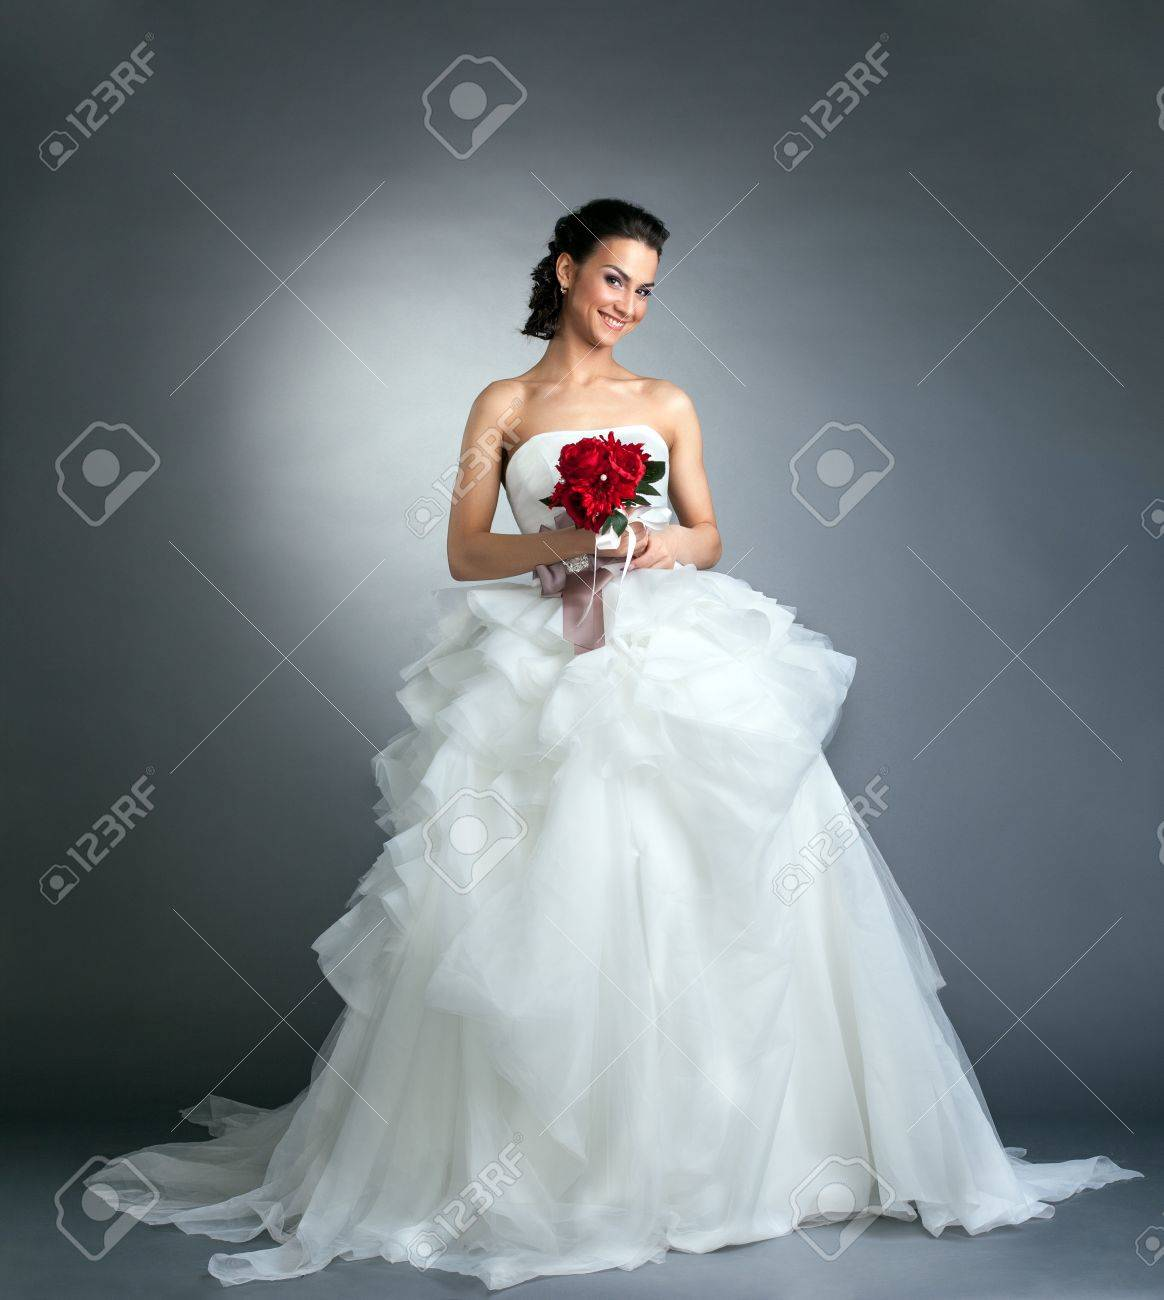 Charming bride with bouquet posing in studio, on gray background - 19564064